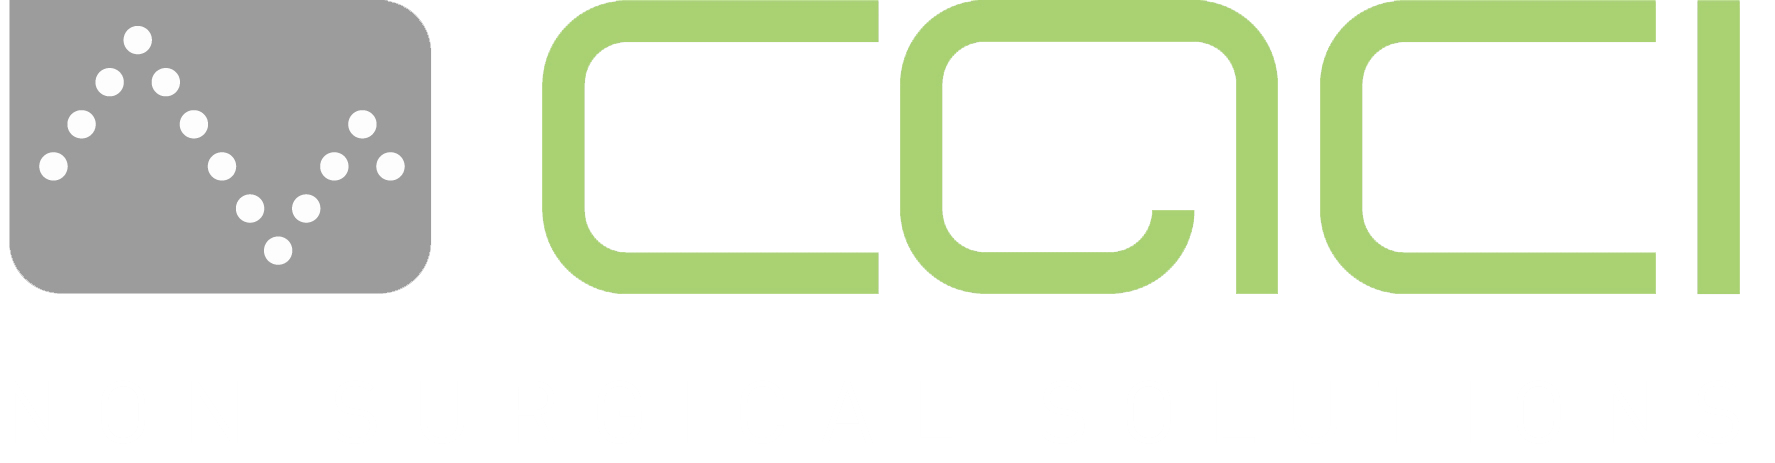 CACCI-logo1 copy.png